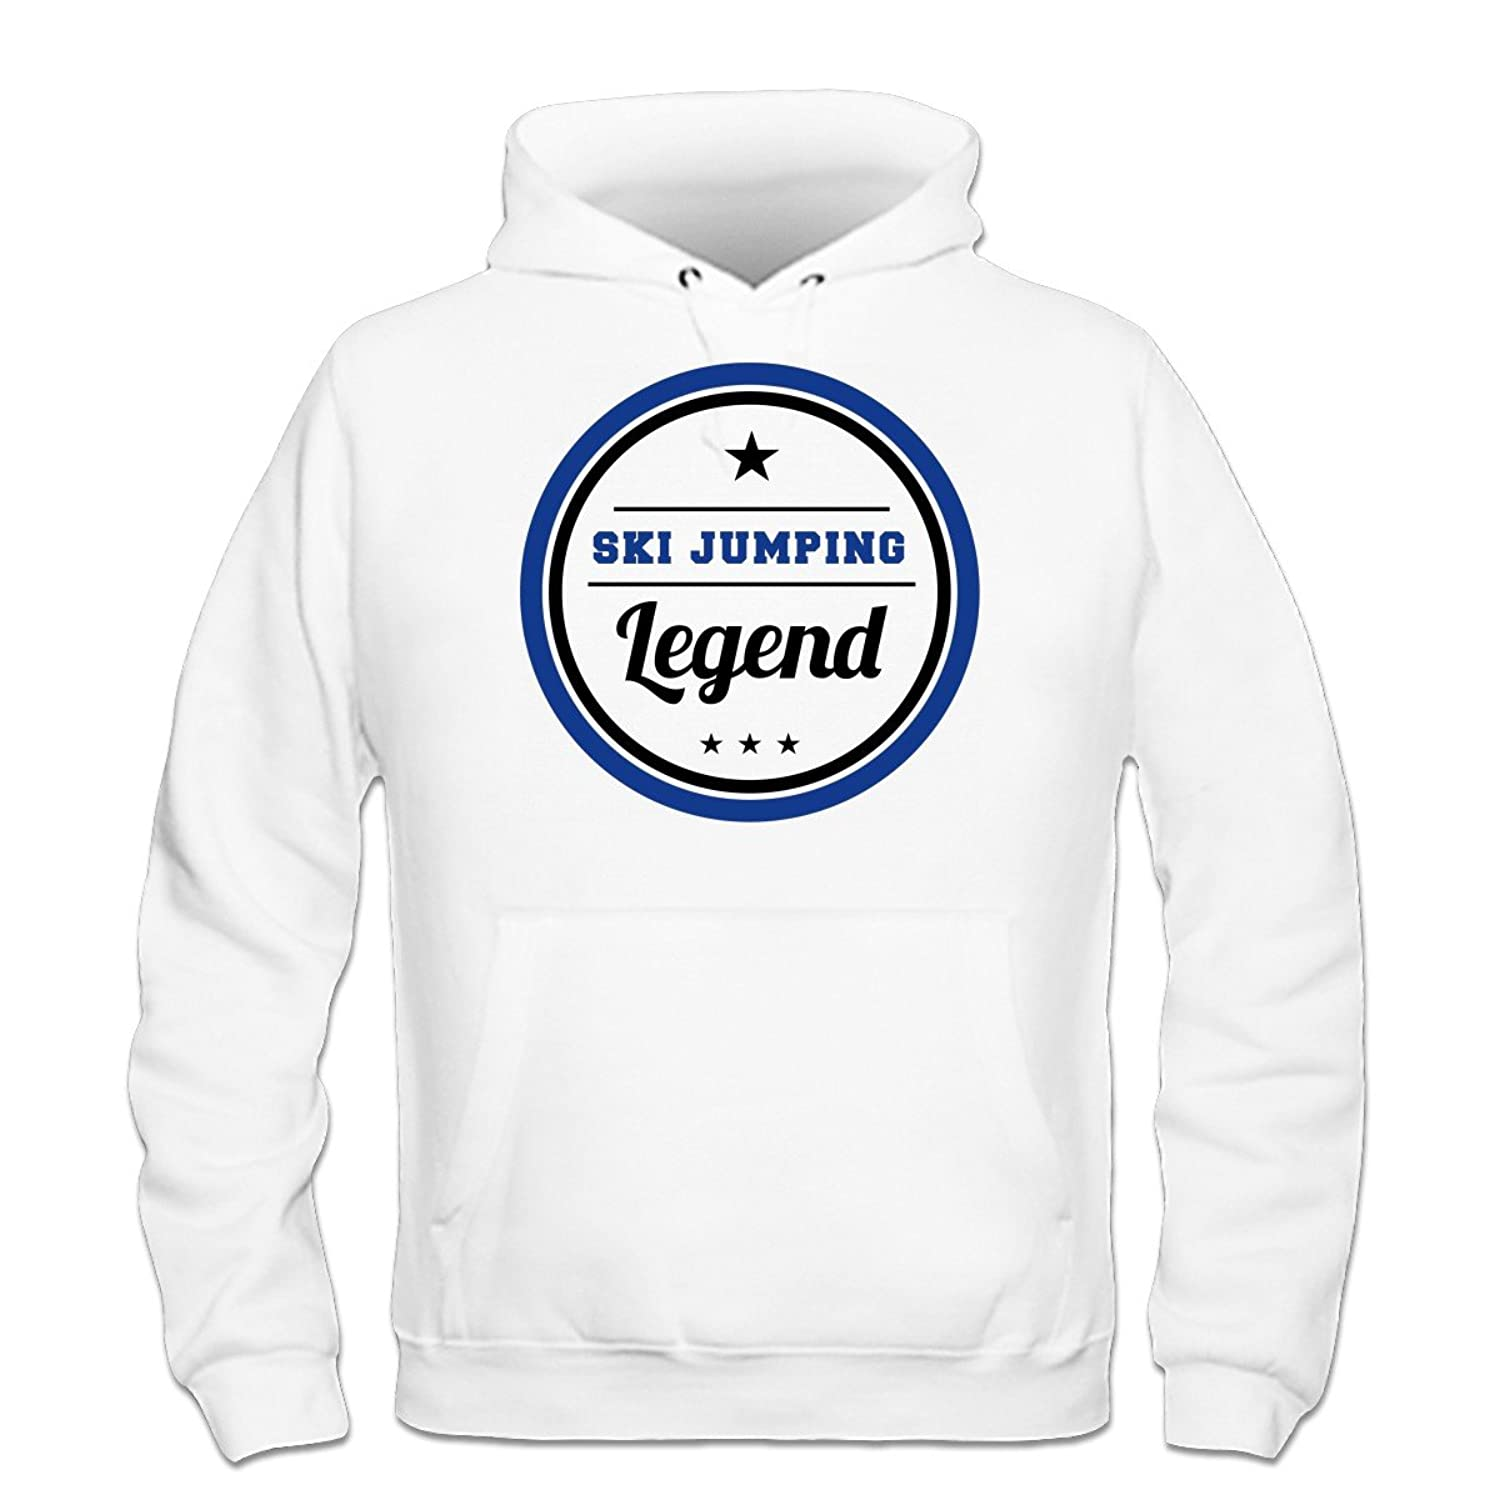 Ski Jumping Legend Kapuzenpulli by Shirtcity